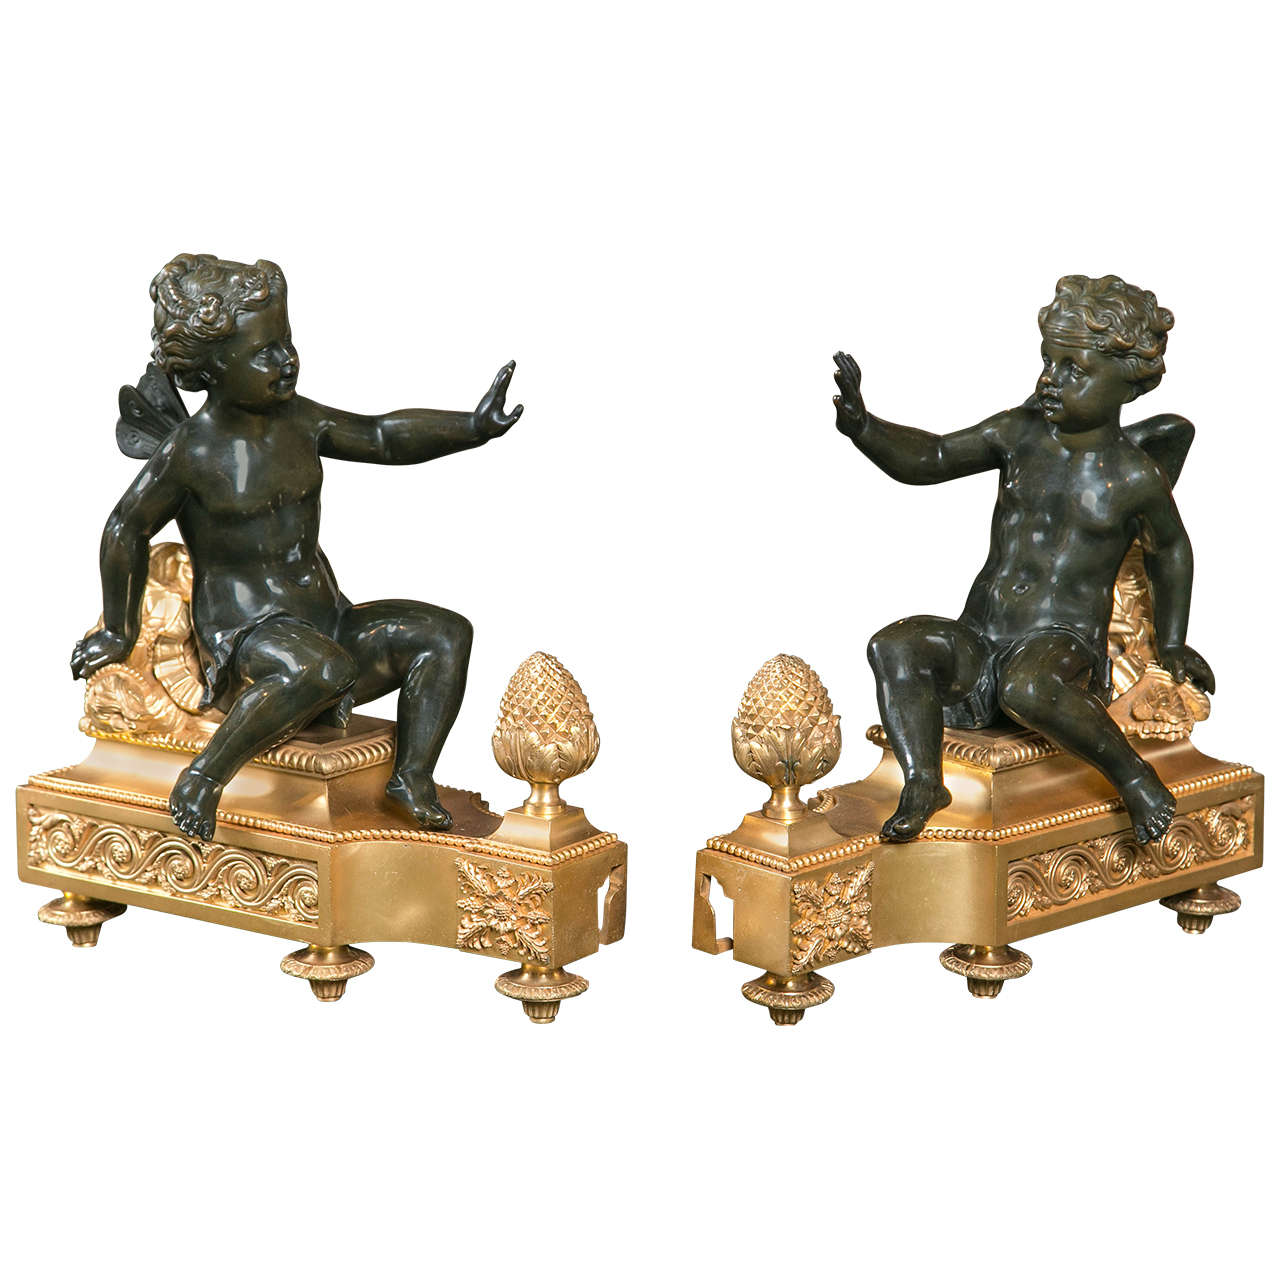 Monumental Size Pair of D'ore and Bronze Chenets For Sale